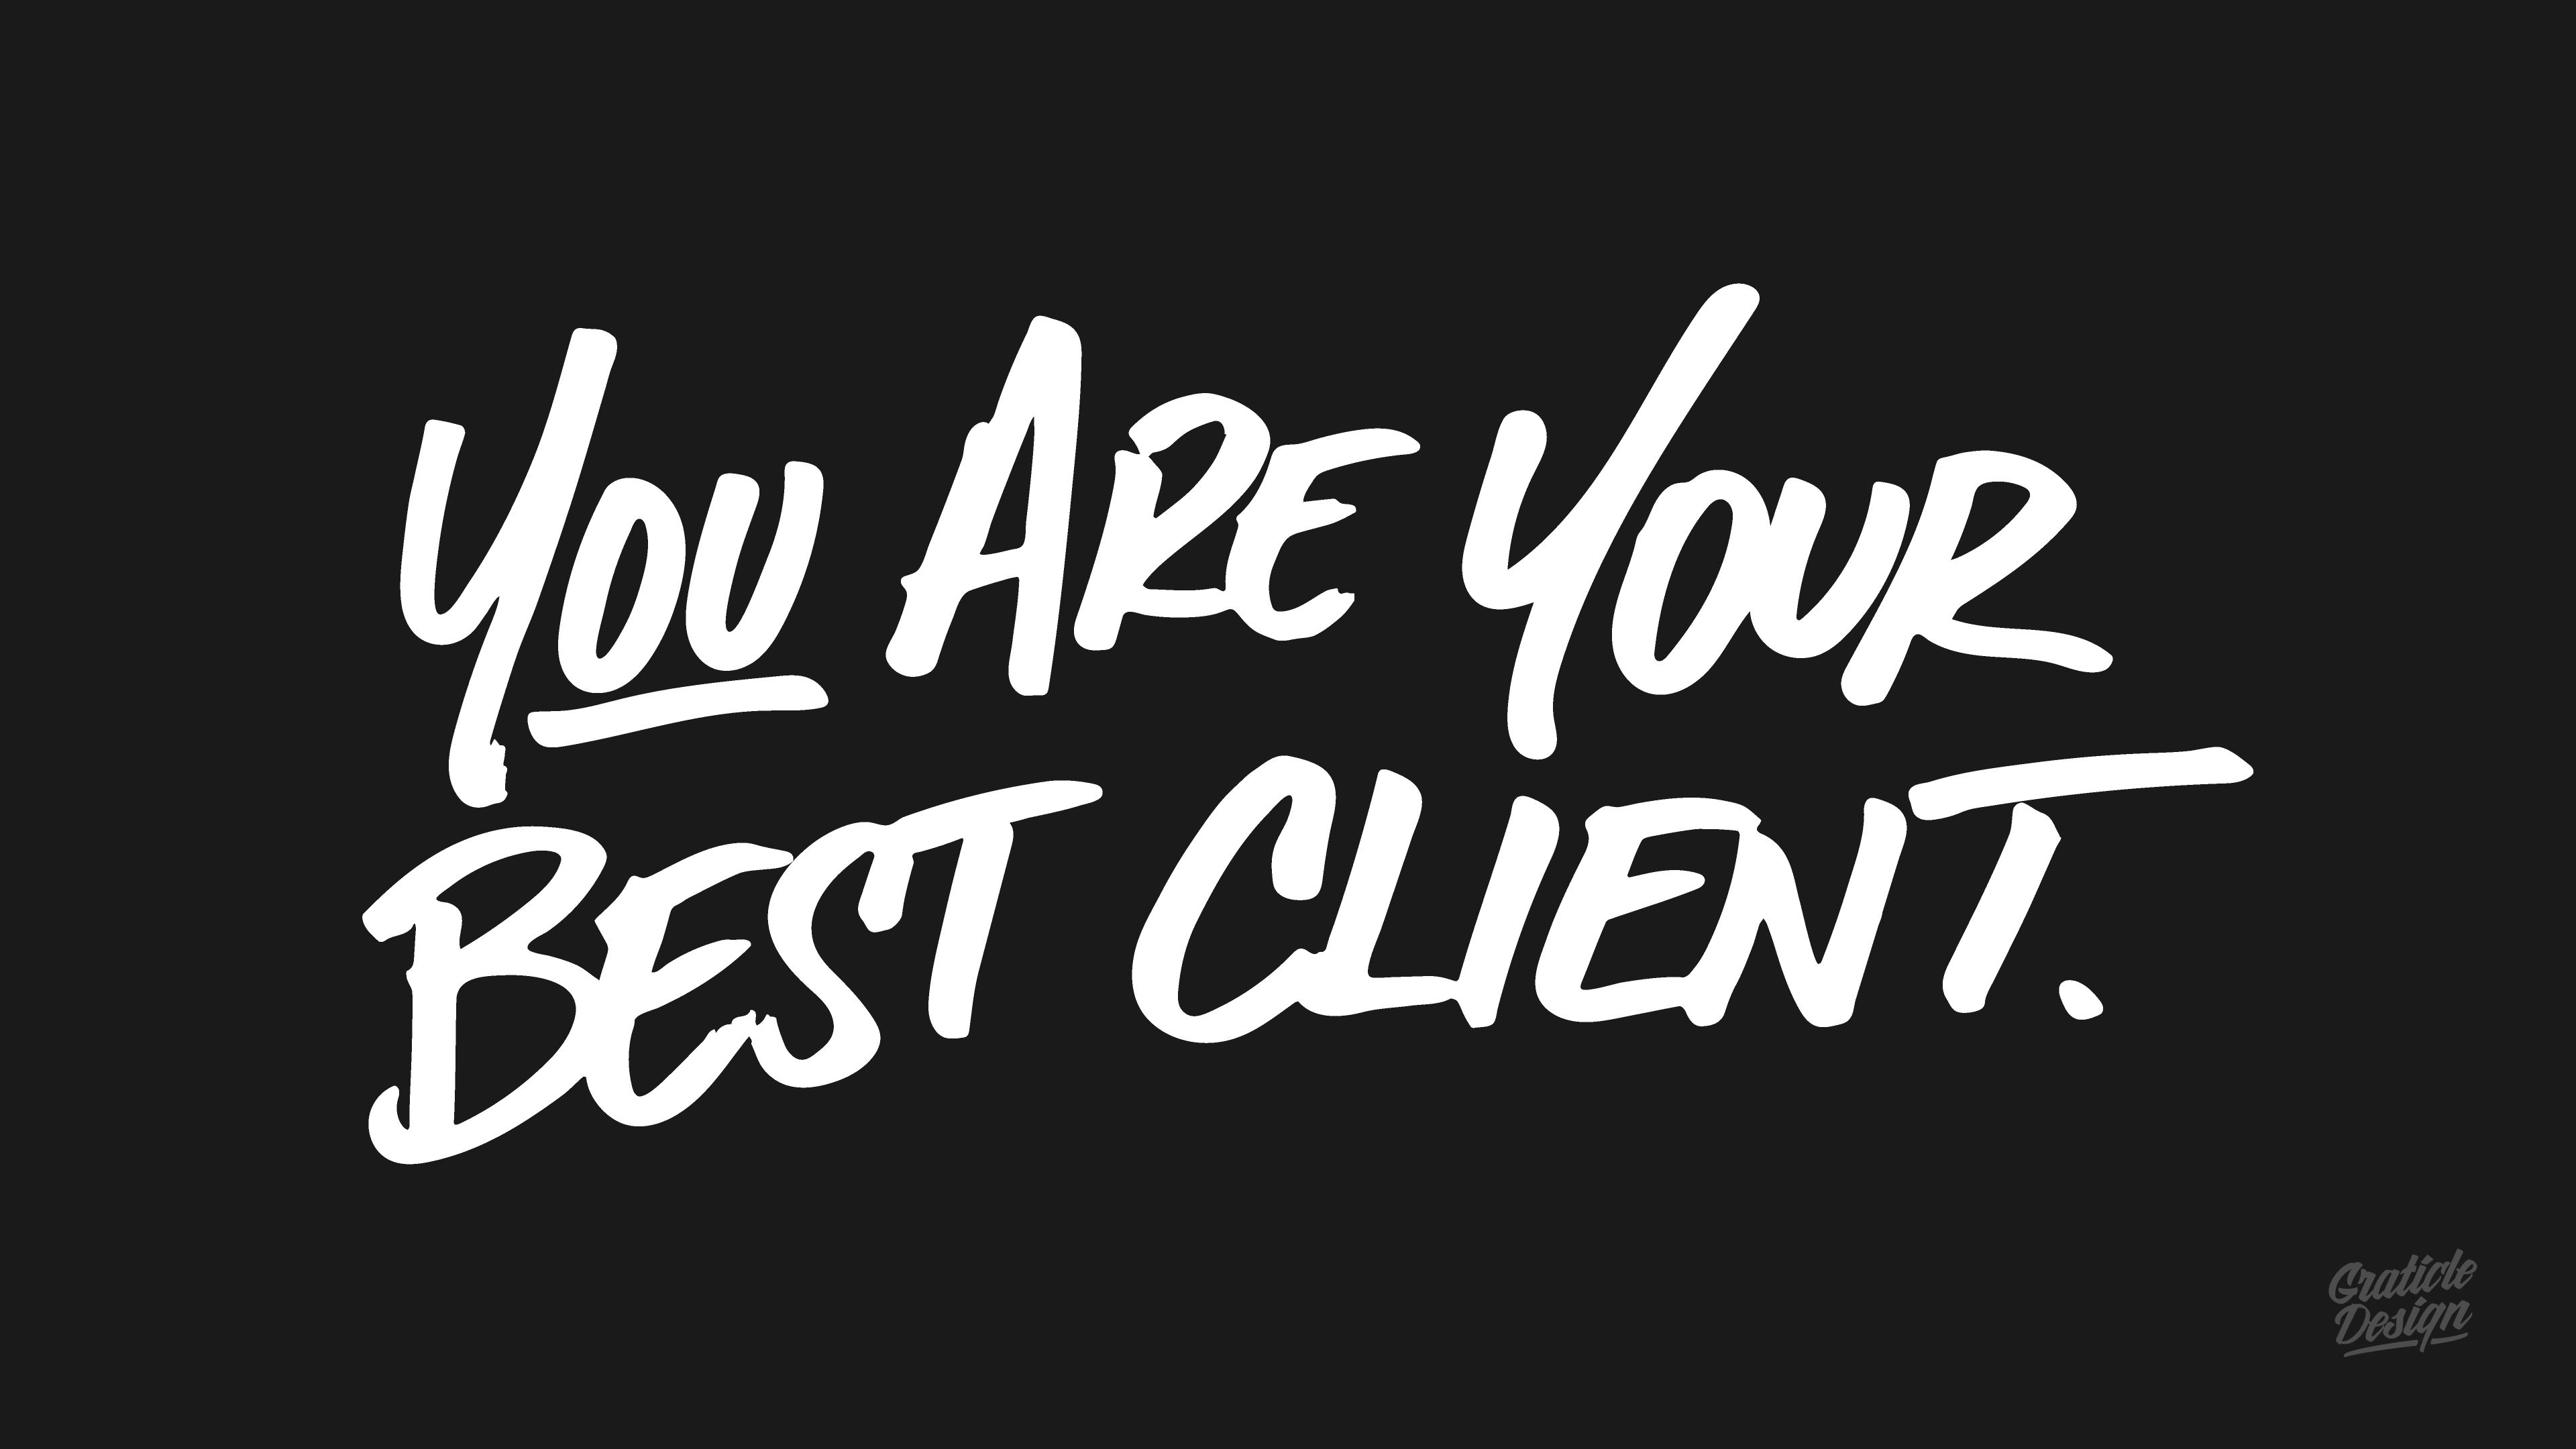 You Are Your Best Client - by Graticle Design